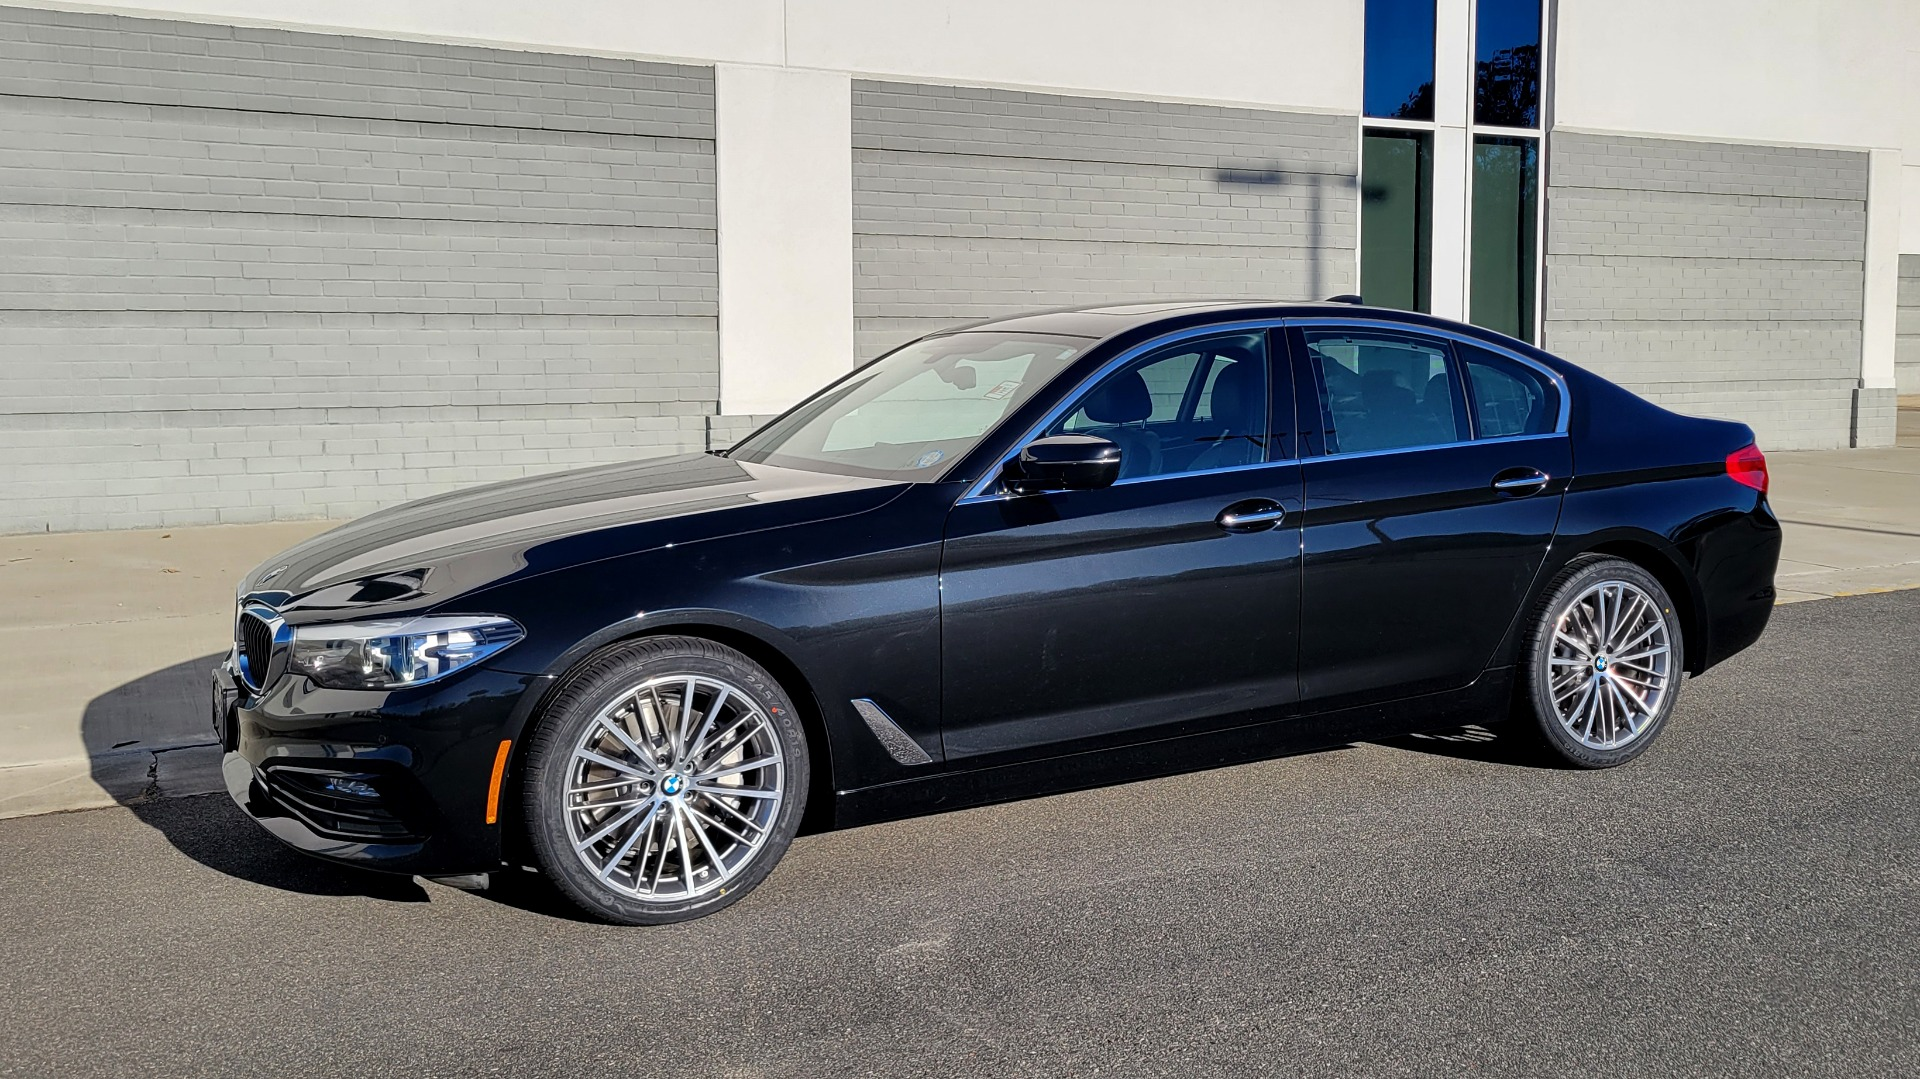 Used 2017 BMW 5 SERIES 530I XDRIVE PREMIUM / NAV / SUNROOF / PARK ASST / CLOD WTHR / REARVIEW for sale Sold at Formula Imports in Charlotte NC 28227 3